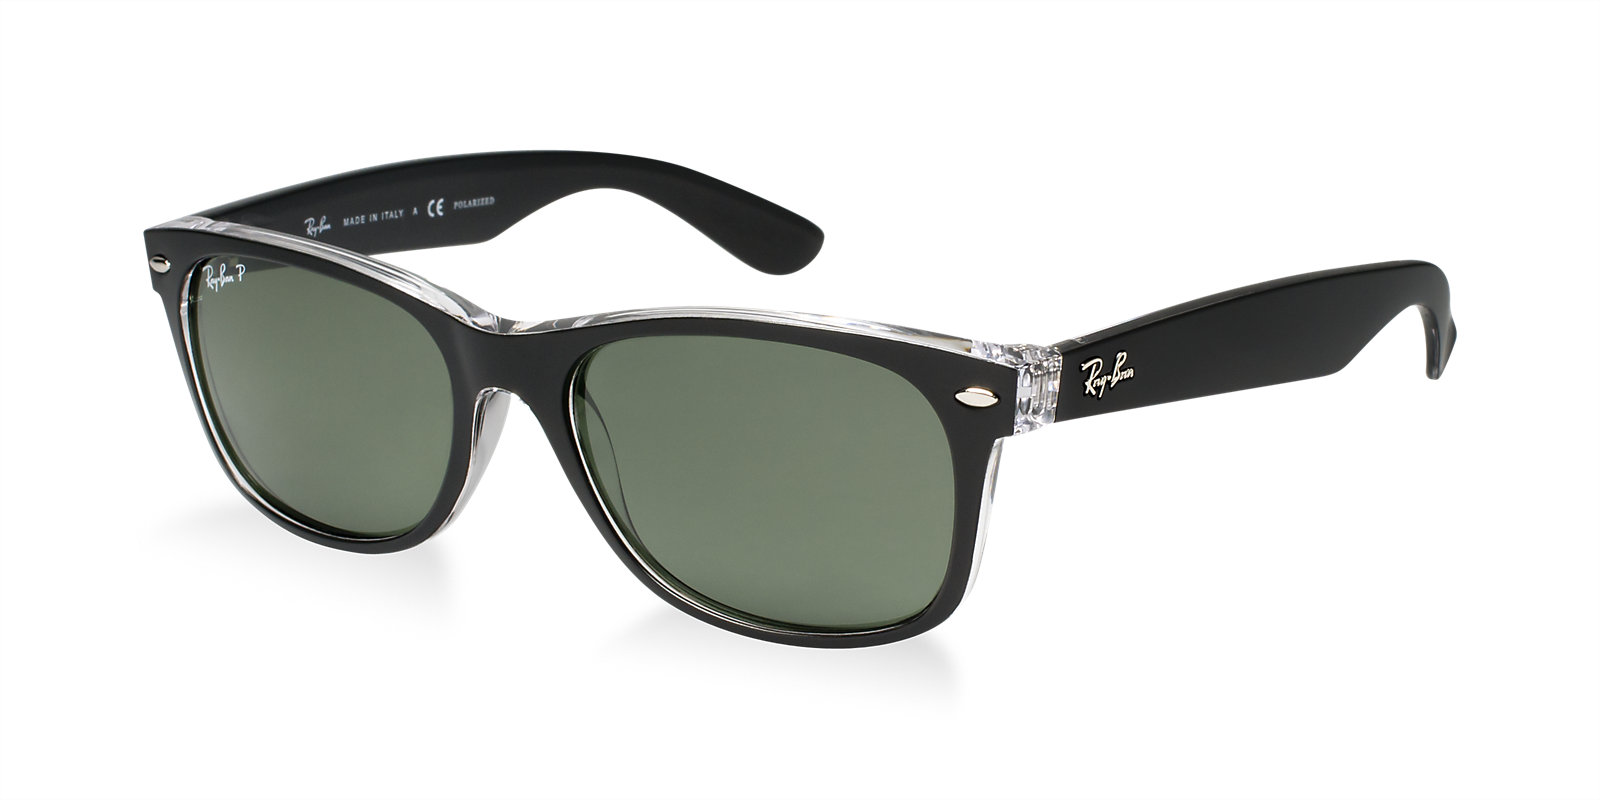 ray ban rb2132 605258 polarized new wayfarer sunglasses lux eyewear. Black Bedroom Furniture Sets. Home Design Ideas